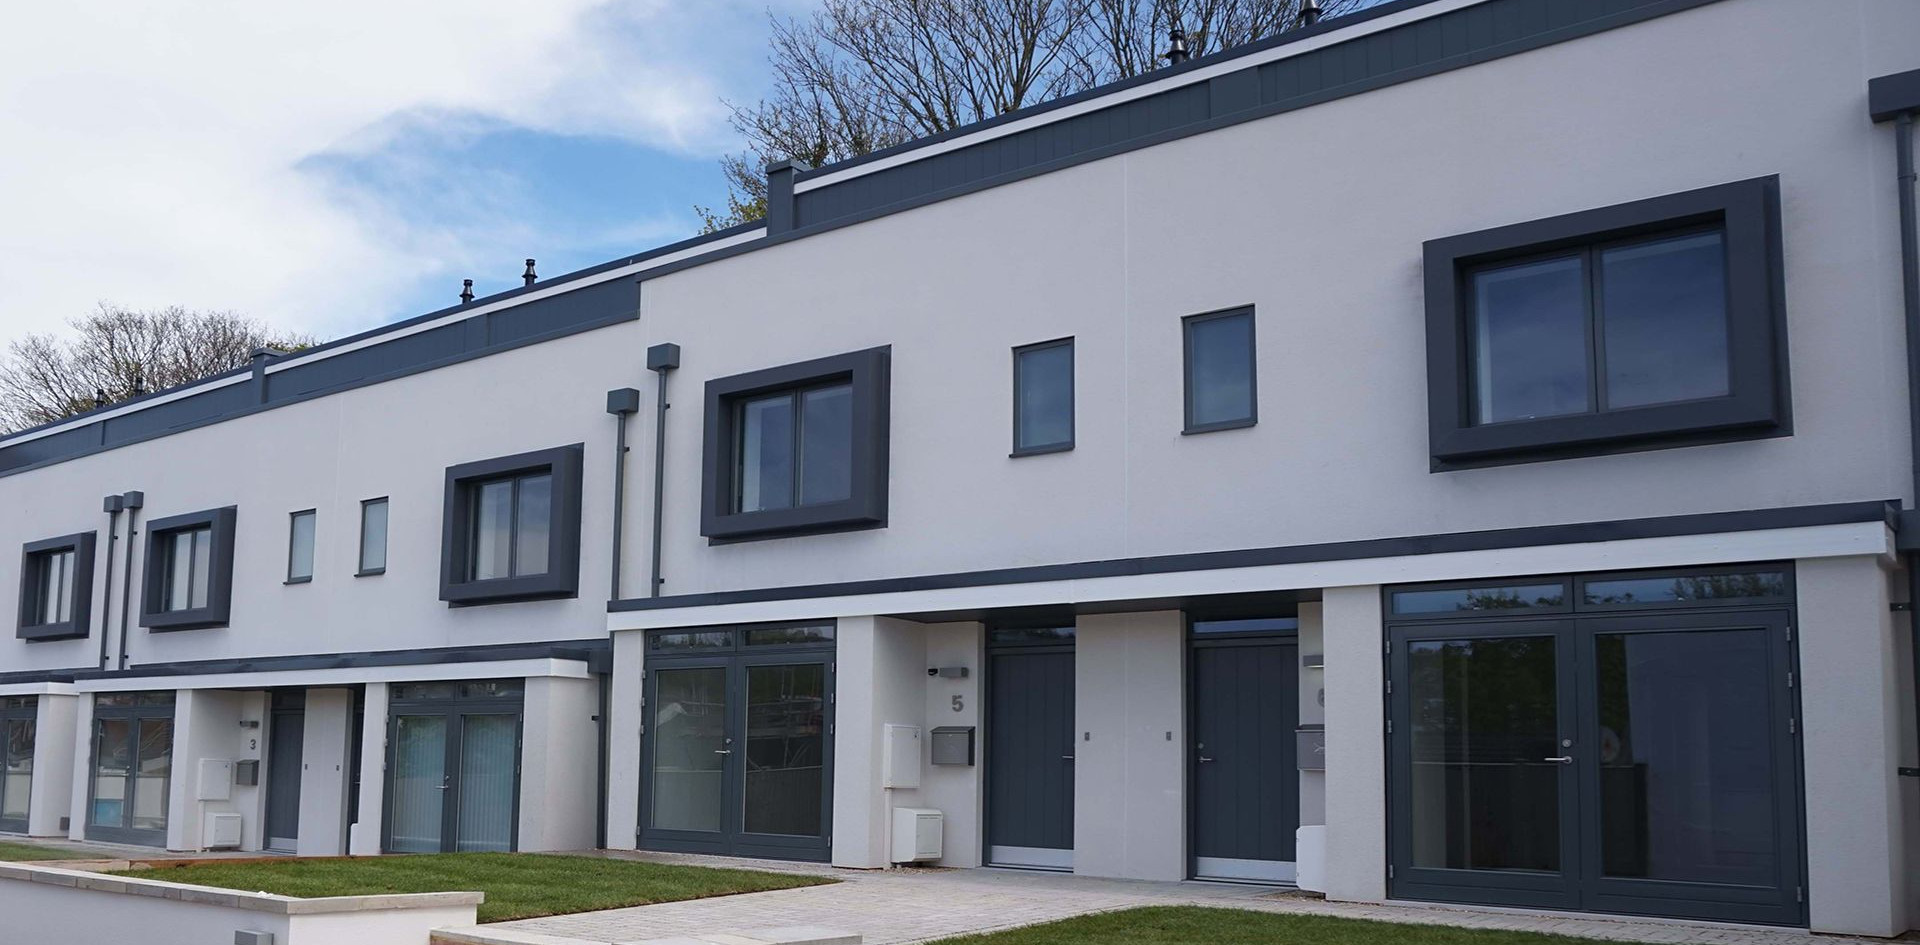 New Build, Additions building work we do, Call for Free Quotes +44 7460 781 722